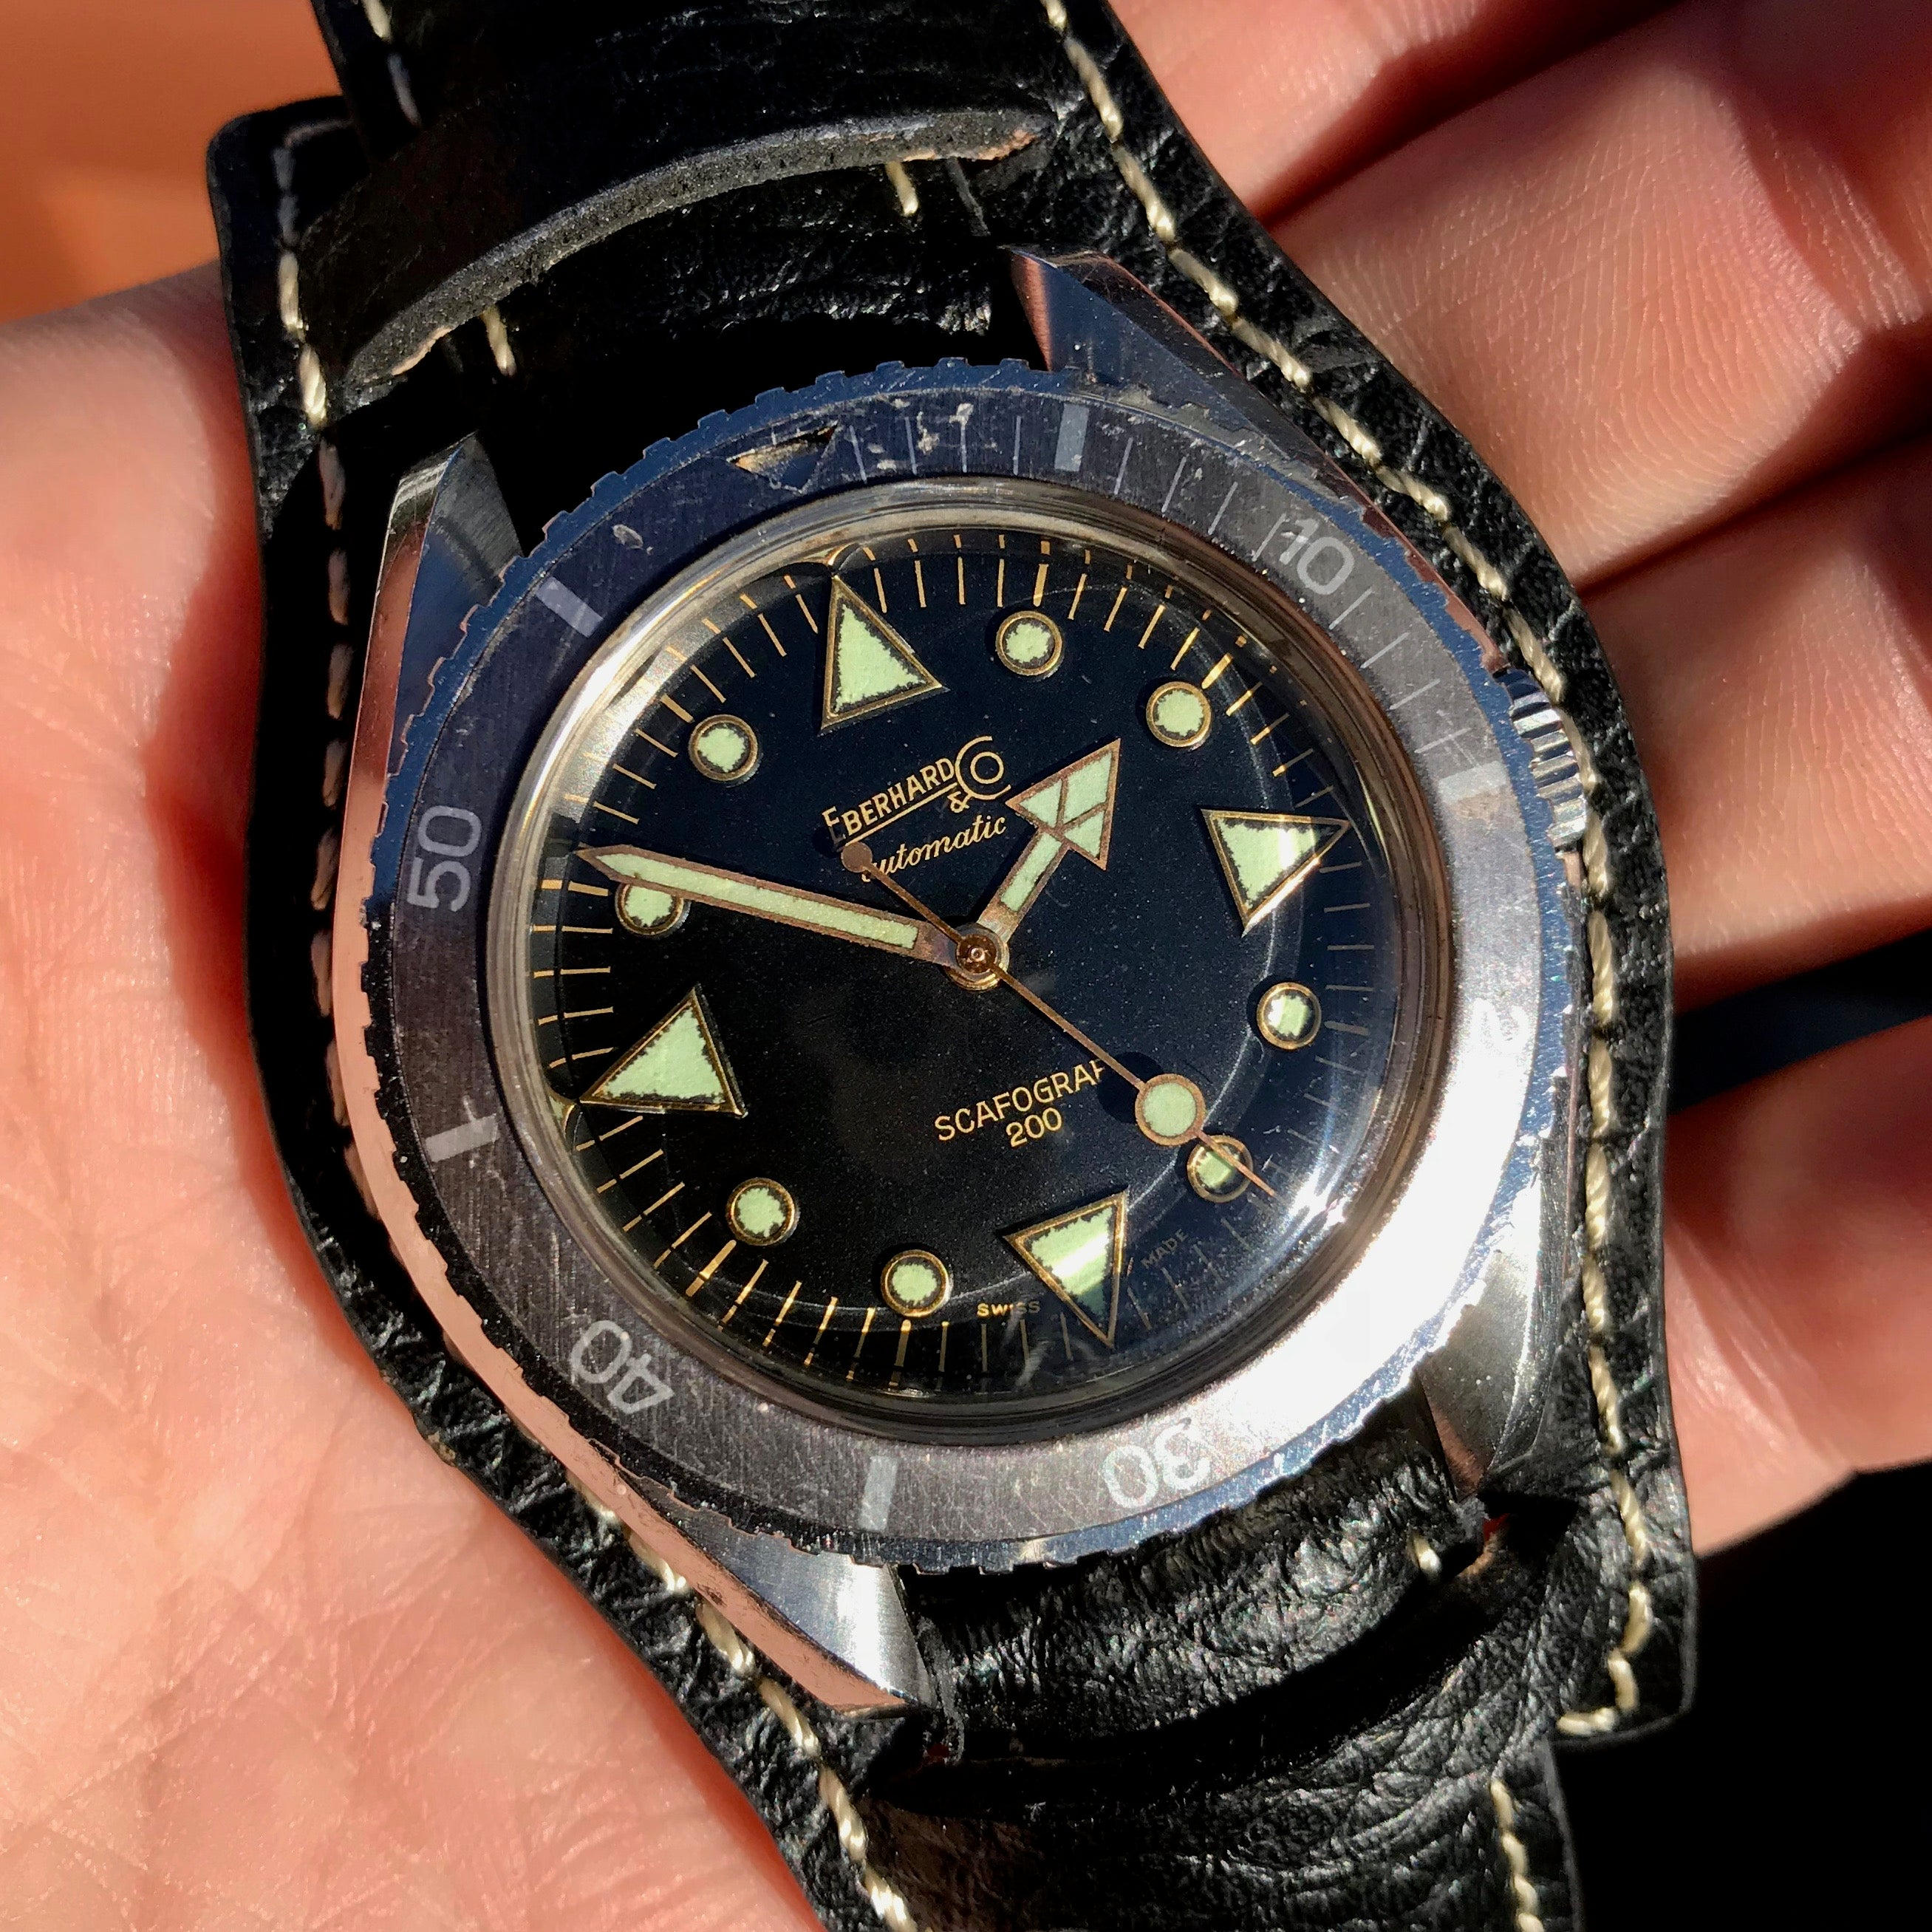 Vintage Eberhard & Co. Scafograf 200 Stainless Steel Divers Gilt Wristwatch - Hashtag Watch Company